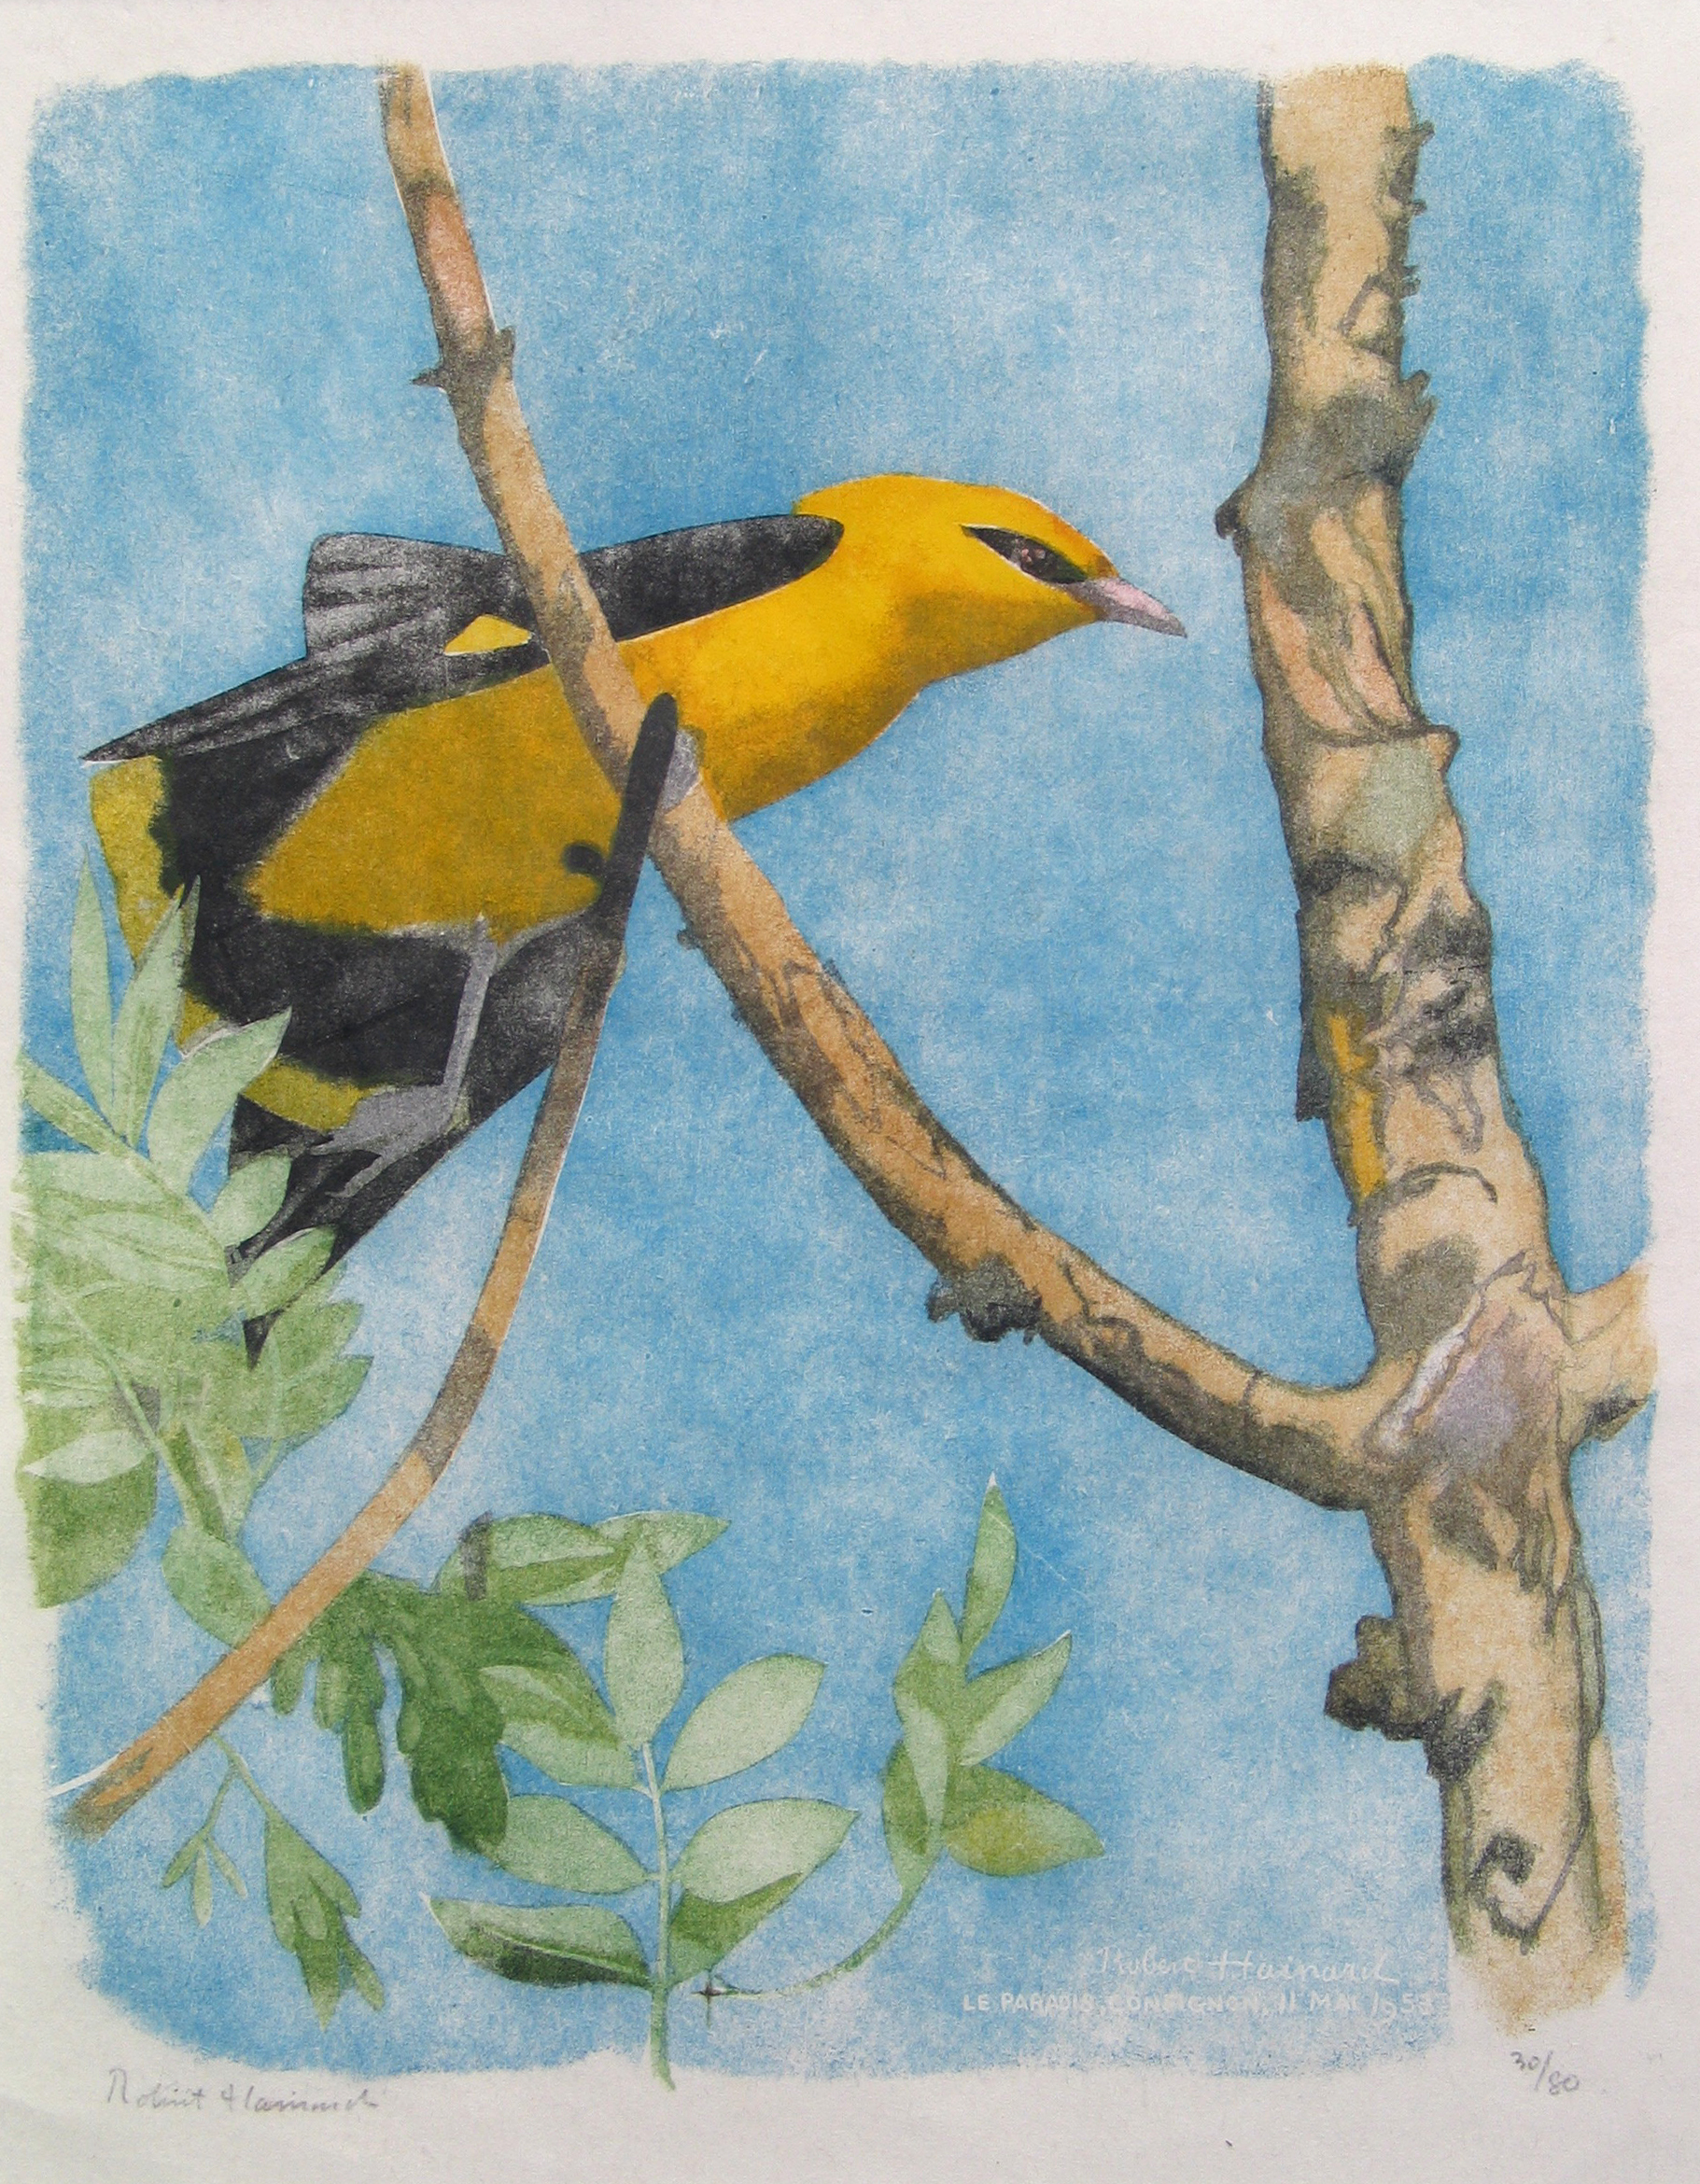 Golden Oriole woodcut by Robert Hainard